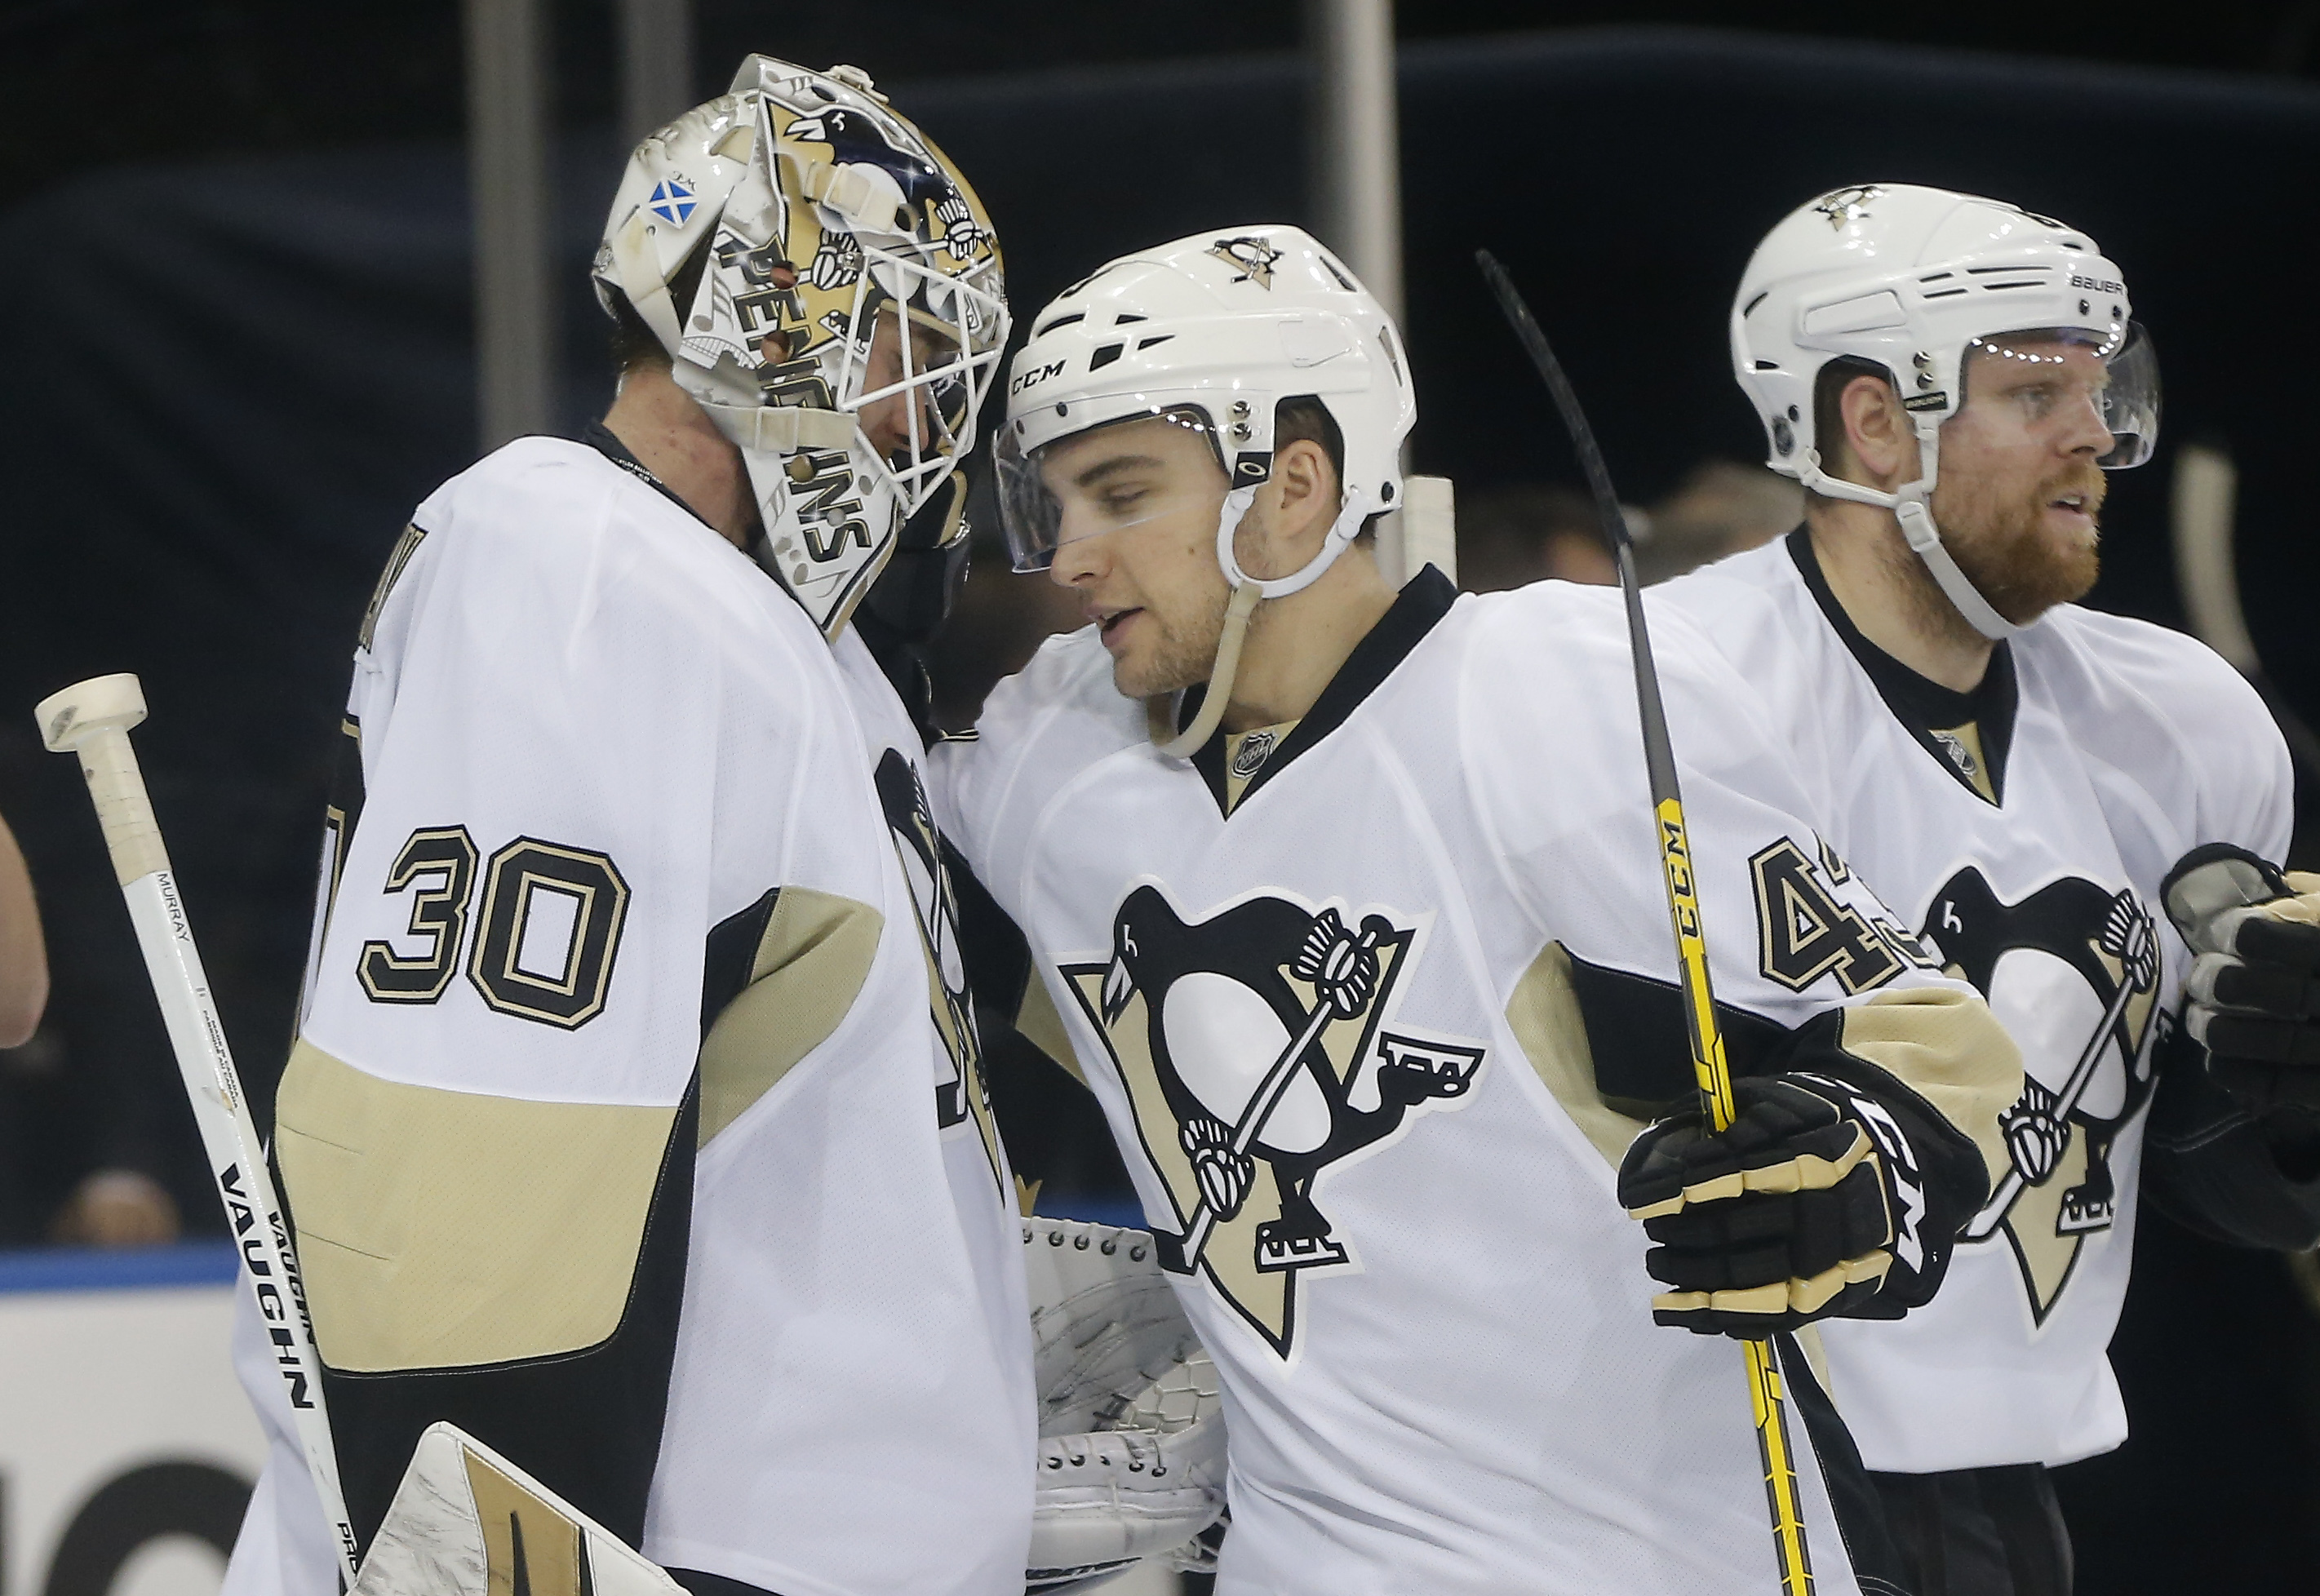 Pittsburgh Penguins goalie Matt Murray (30) is congratulated by left wing Conor Sheary (43) after recording a shutout in the Penguins' 5-0 win over the New York Rangers in Game 4 of an NHL hockey first-round Stanley Cup playoff series, Thursday, April 21,